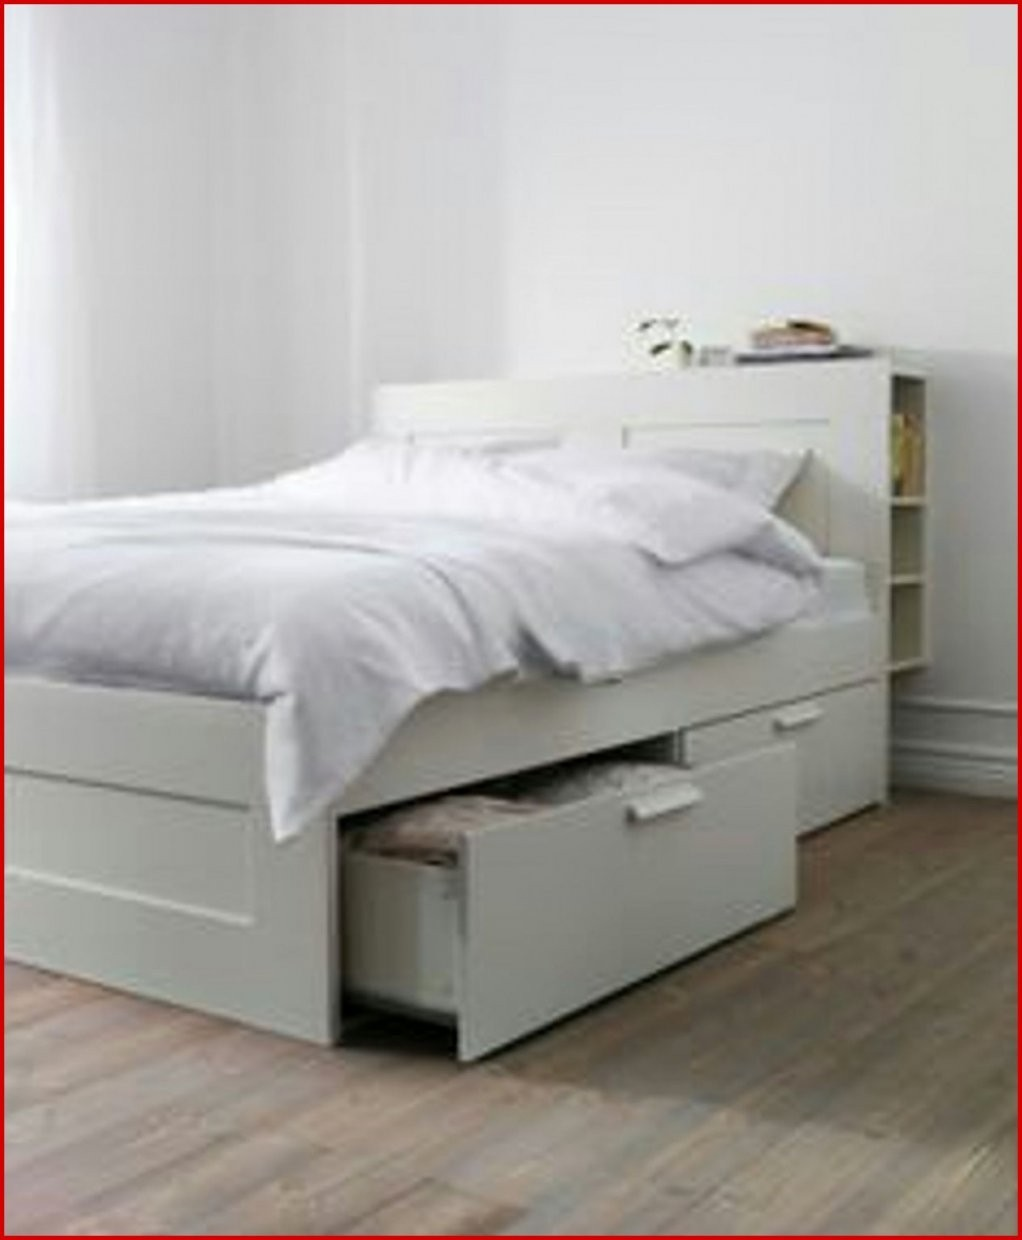 Hemnes Bed Frame Double King Size Beds Ikea Best Of Ikea Betten 160 von Ikea Hemnes Bett 160X200 Photo